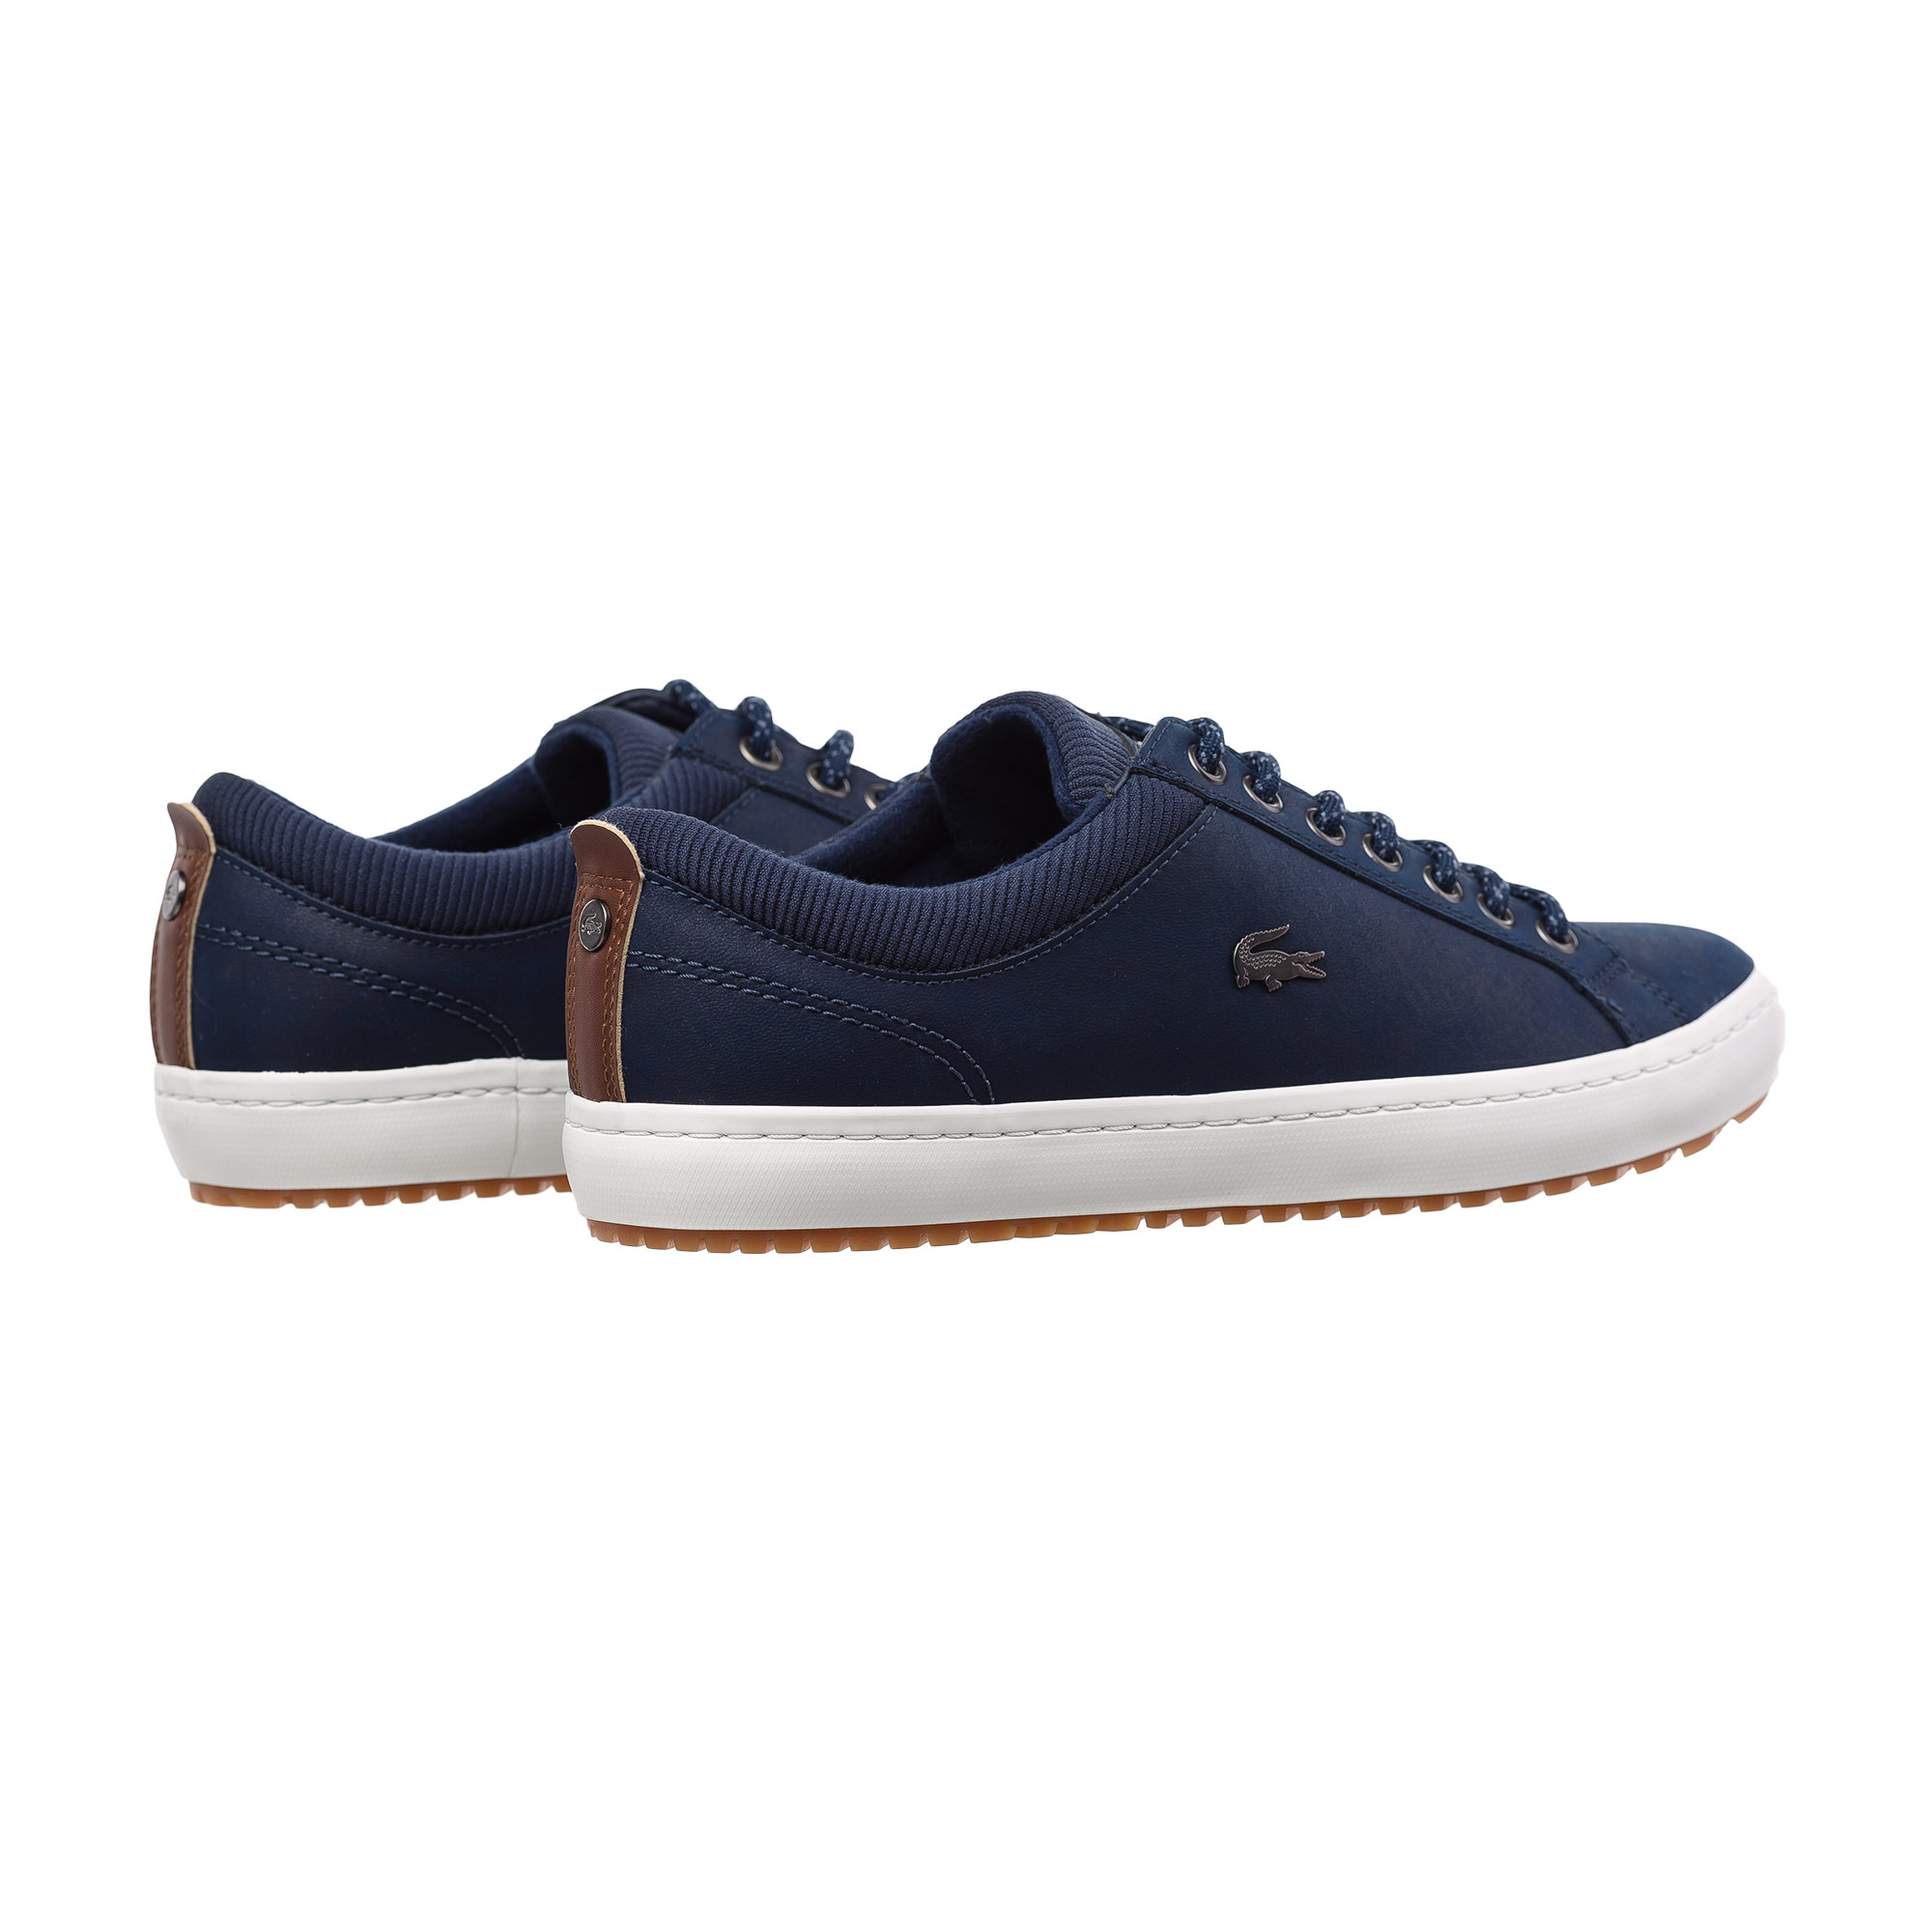 Lacoste Men's Straightset Insulate 318 1 Sneakers